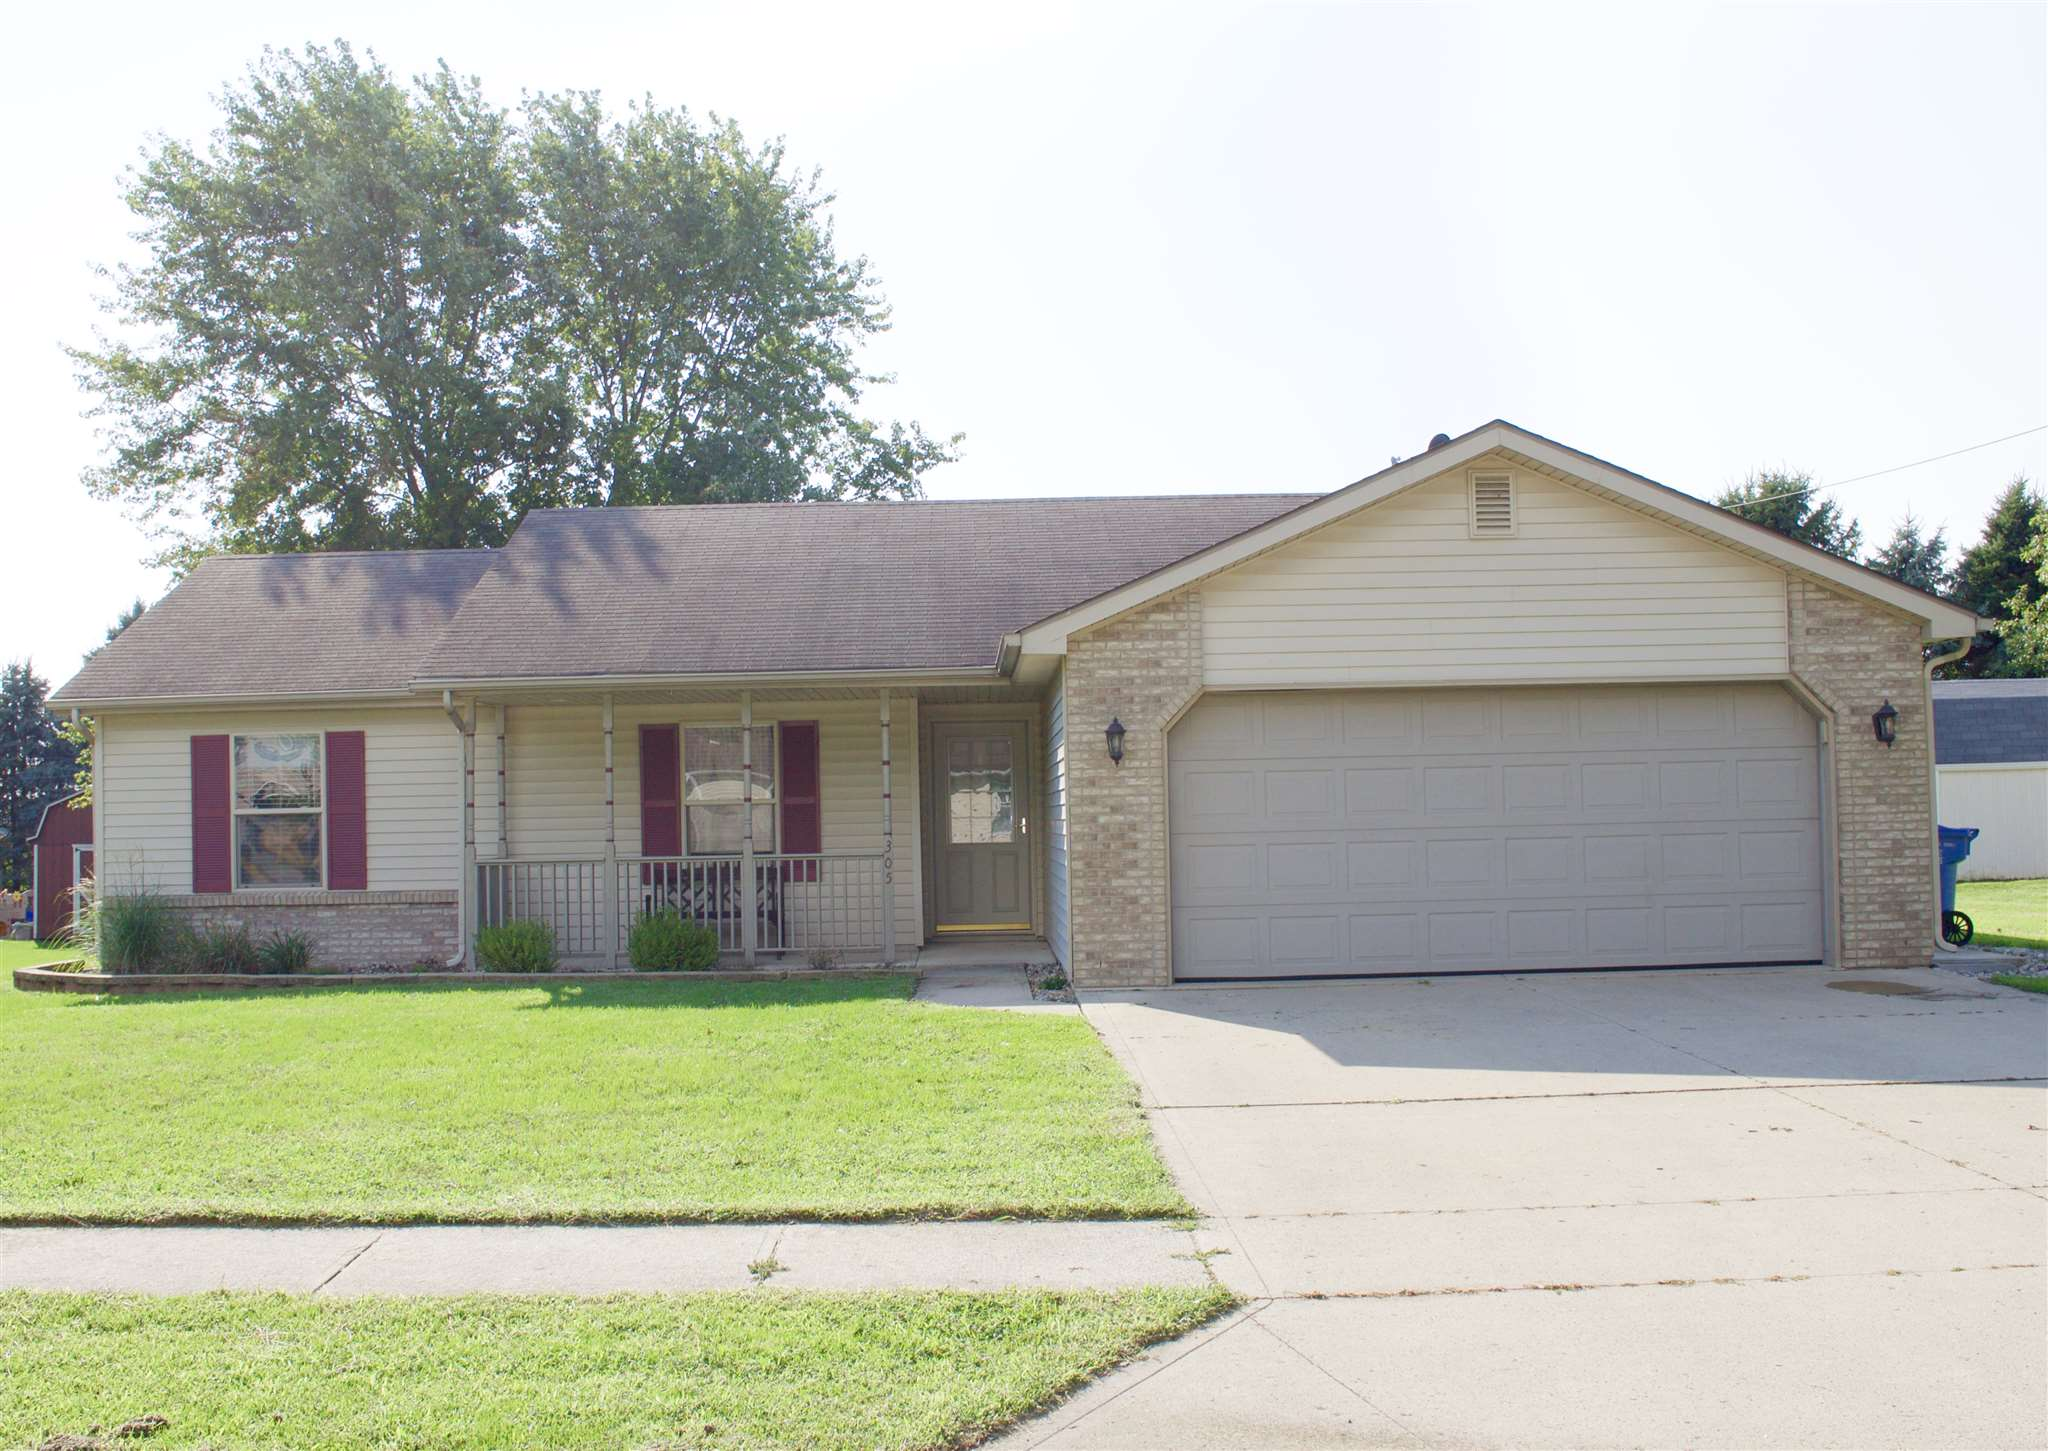 305 N Reed Street, South Whitley, IN 46787